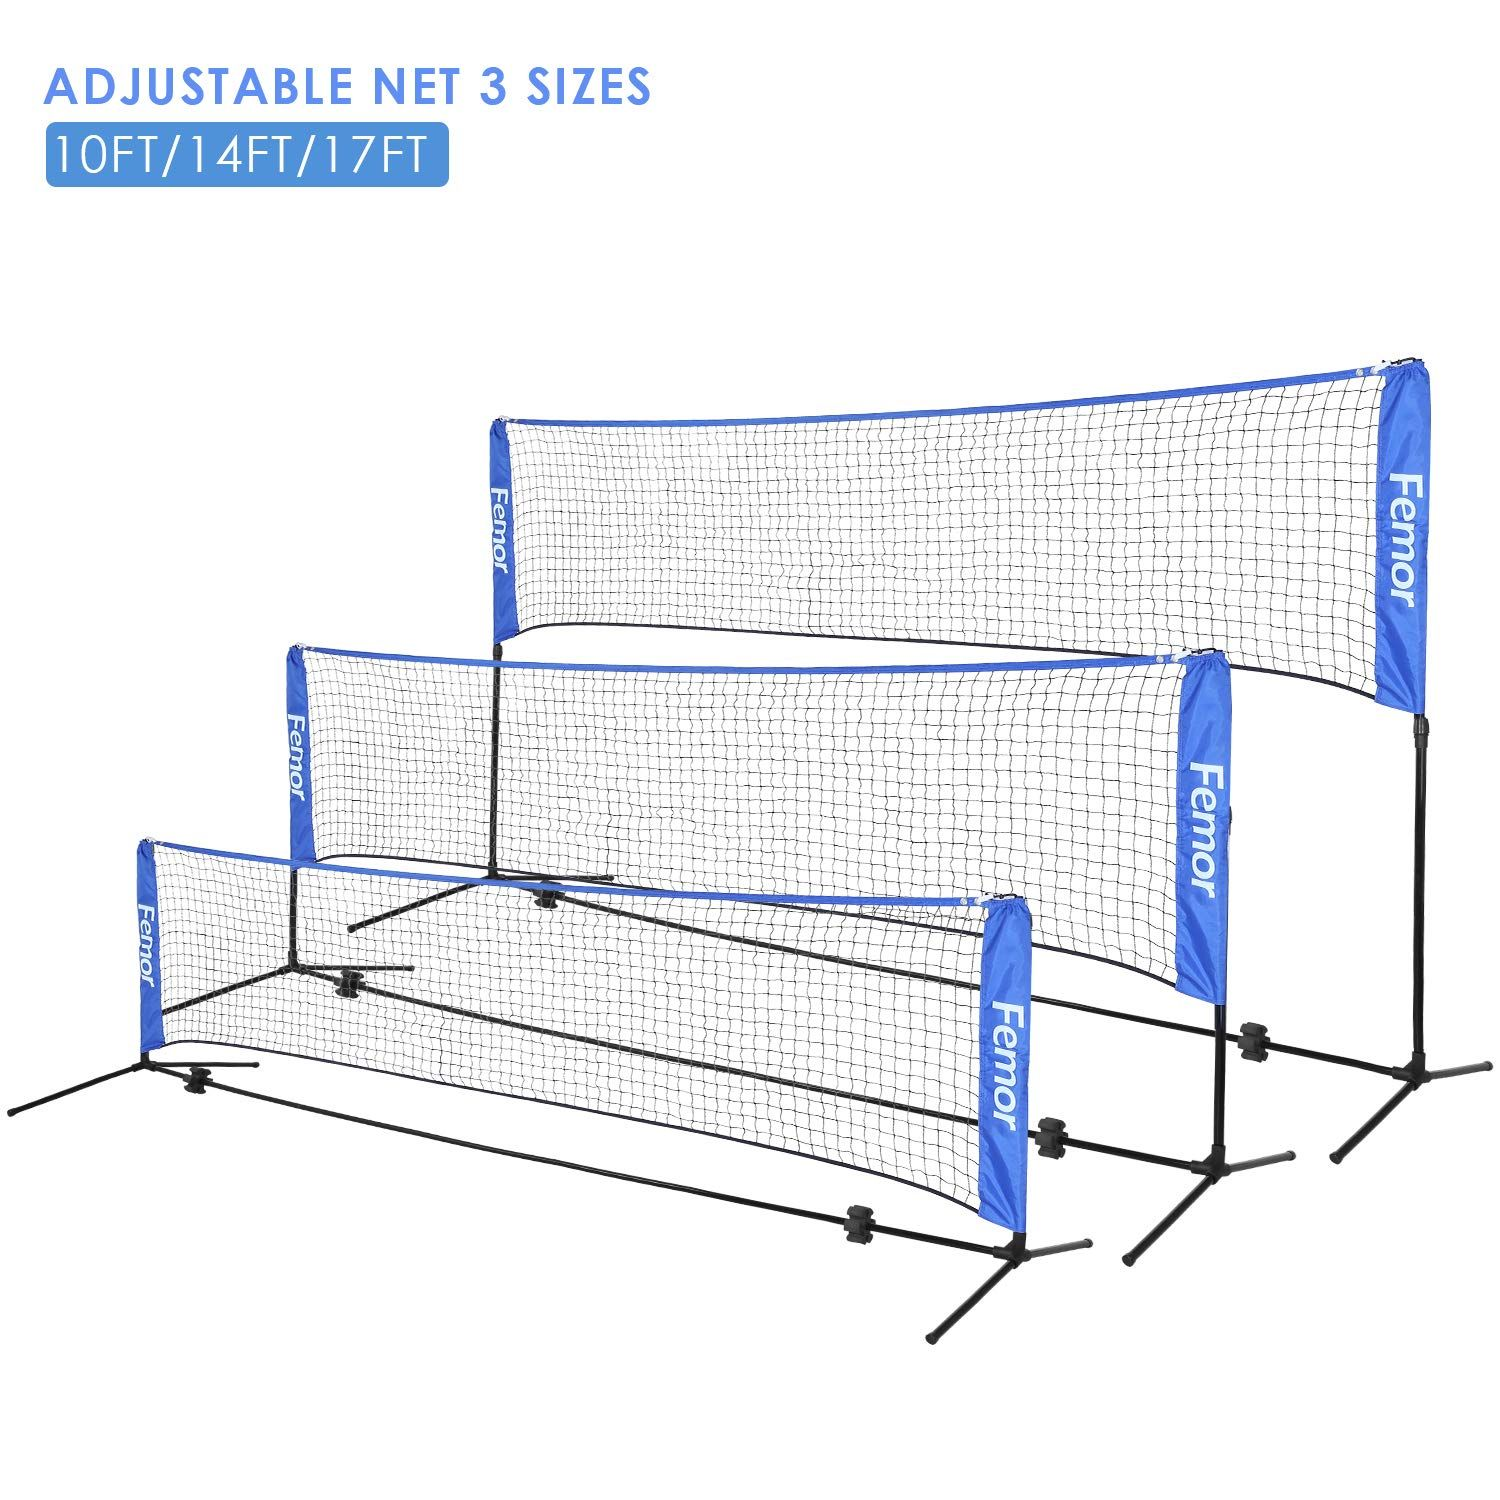 Femor Portable Badminton Tennis Net Adjustable Net For Soccer Tennis Kids Volleyball Beach Ball Sports Net Set For Indoor Outdo In 2020 Tennis Nets Soccer Tennis